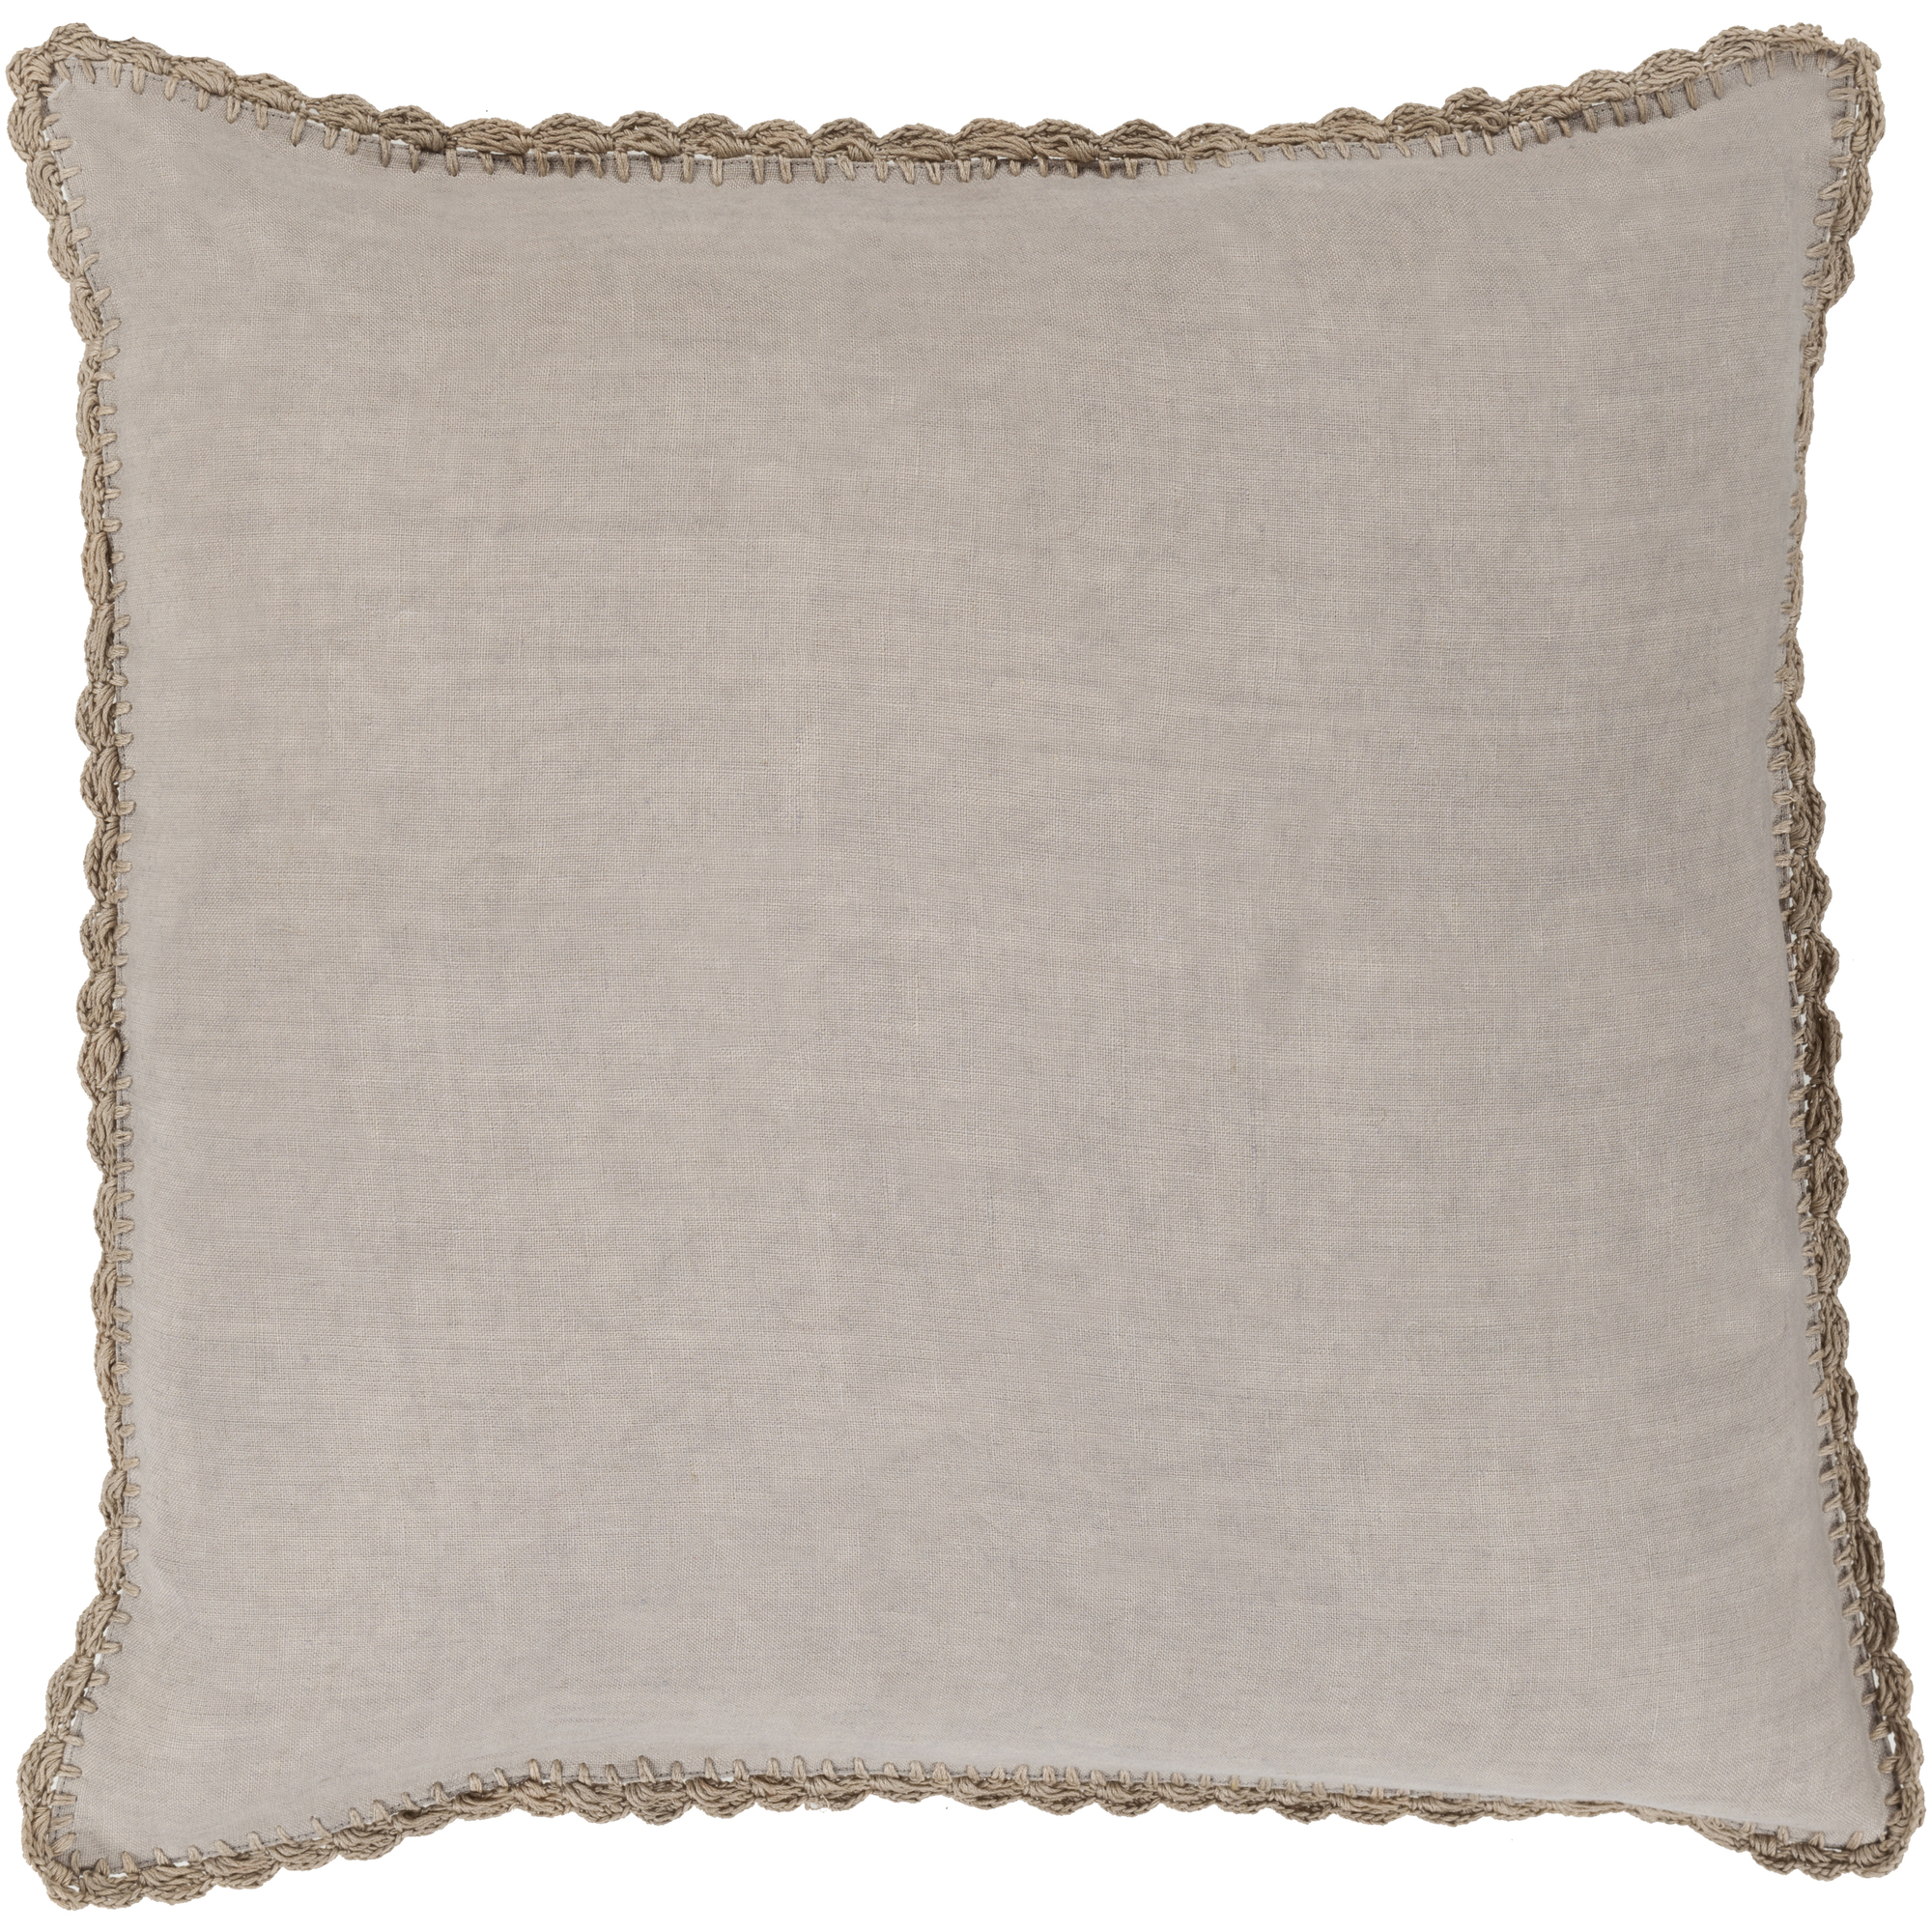 "Art of Knot Velletri 20"" x 20"" Pillow Cover"